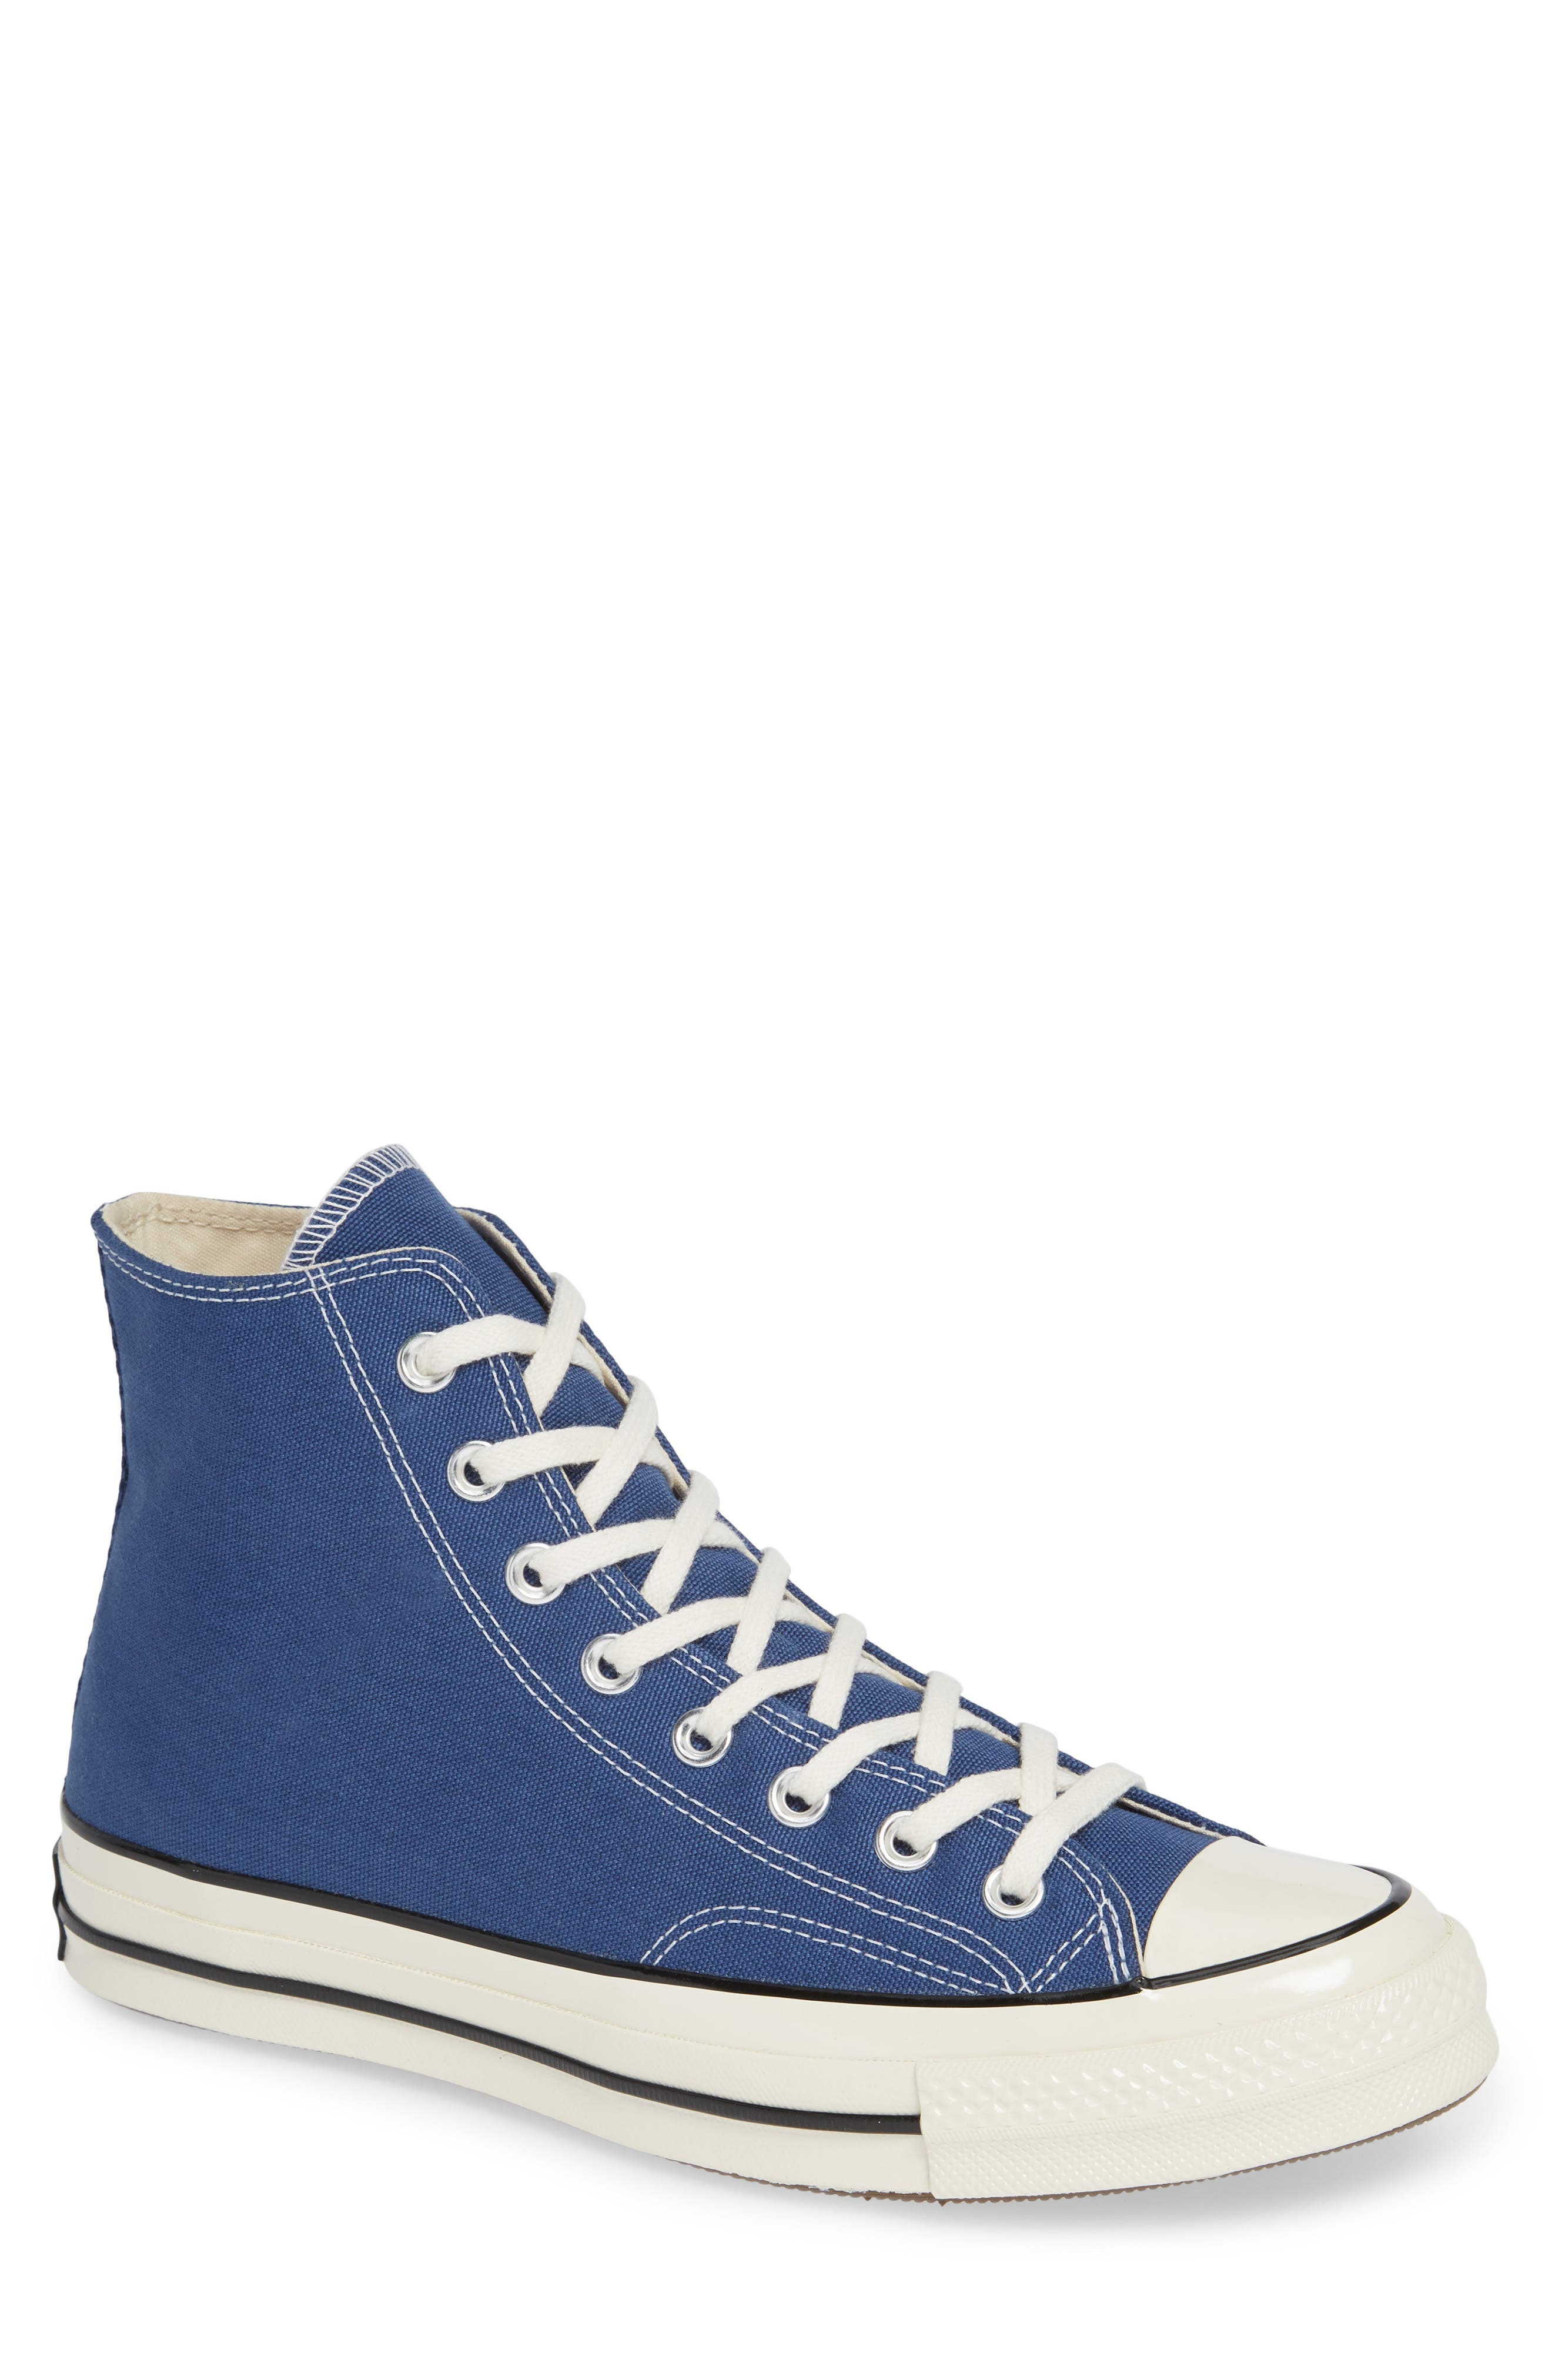 Chuck Taylor<sup>®</sup> All Star<sup>®</sup> 70 Vintage High Top Sneaker,                         Main,                         color, TRUE NAVY/ BLACK